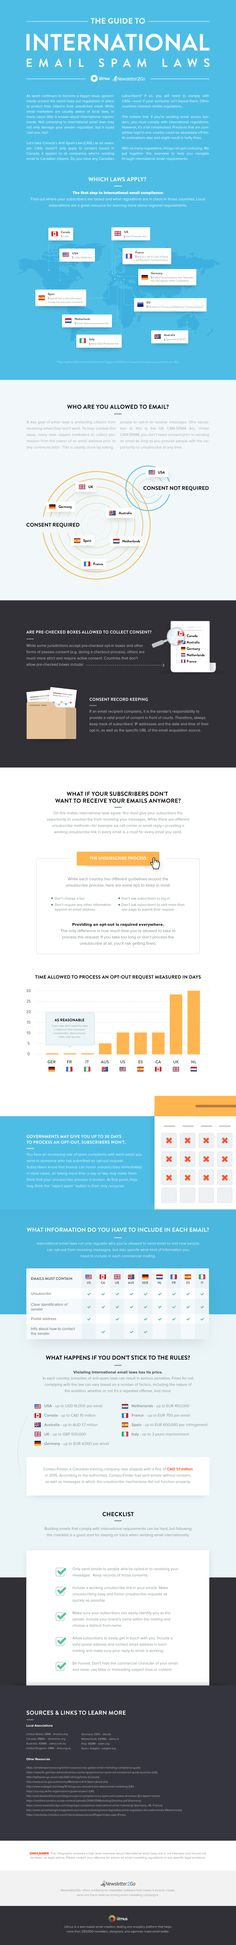 The Ultimate Guide to International Email Law [Infographic] – Litmus Software, Inc.